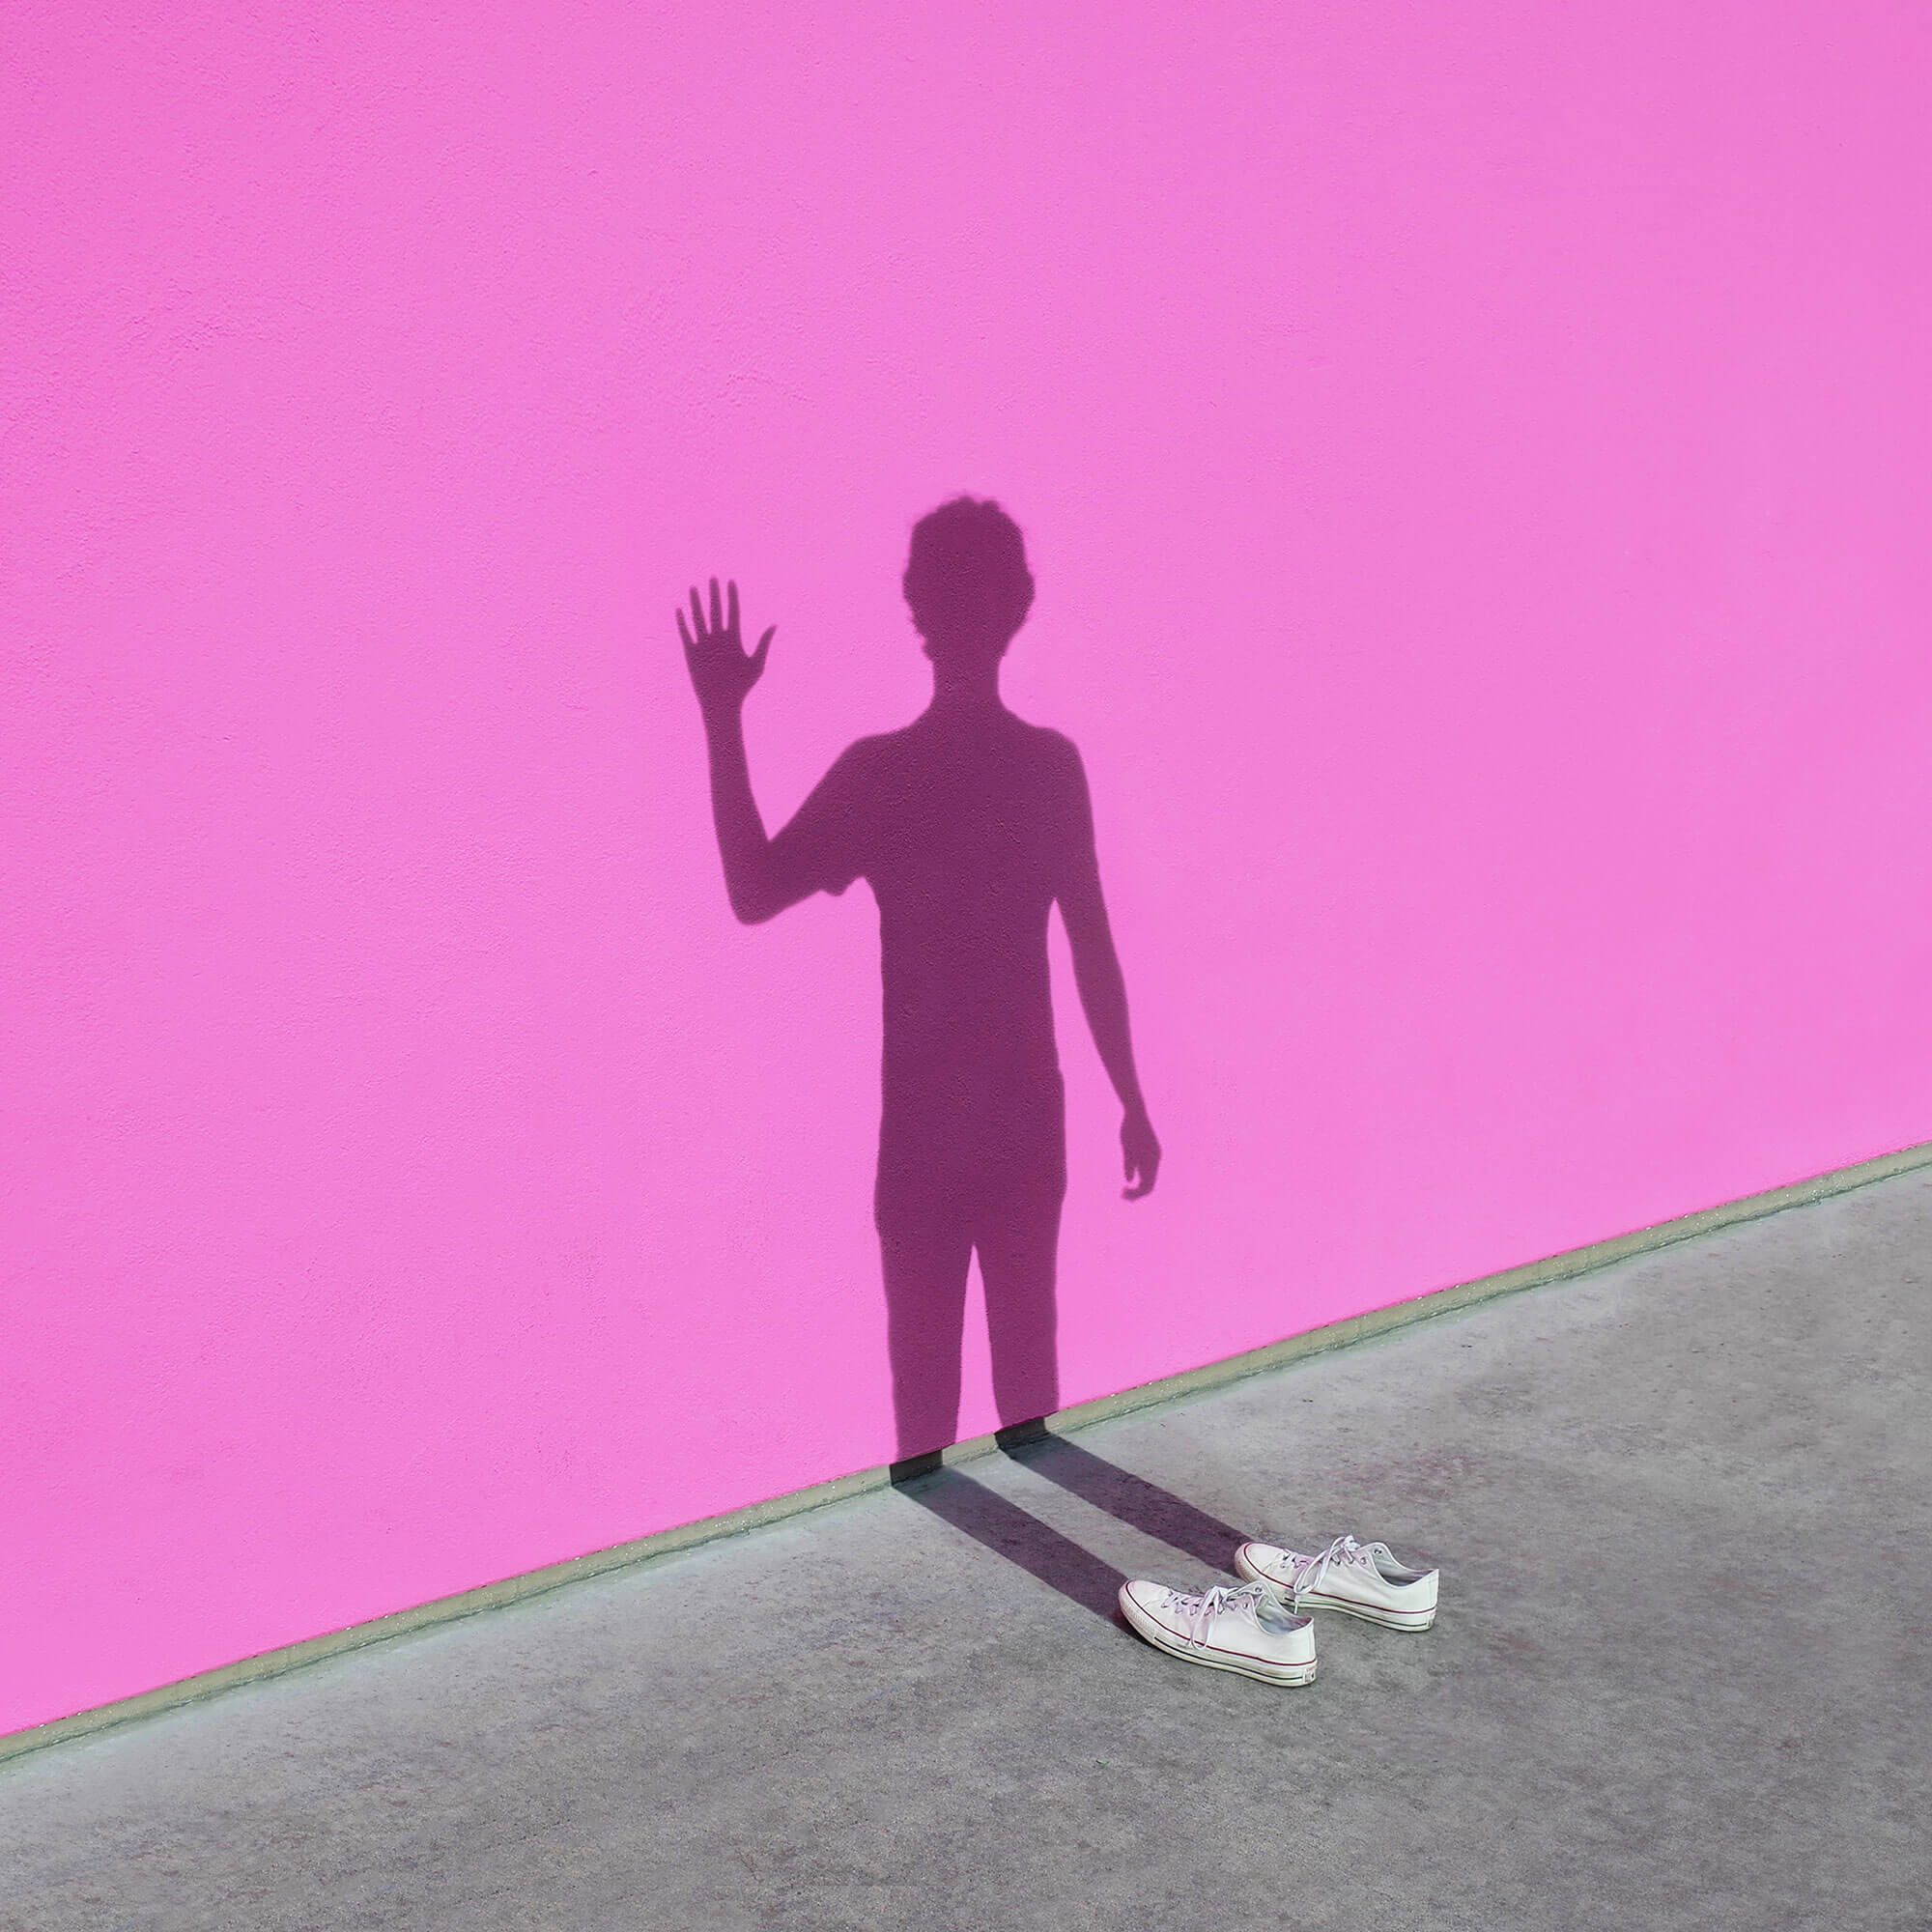 Shadow on wall with converse